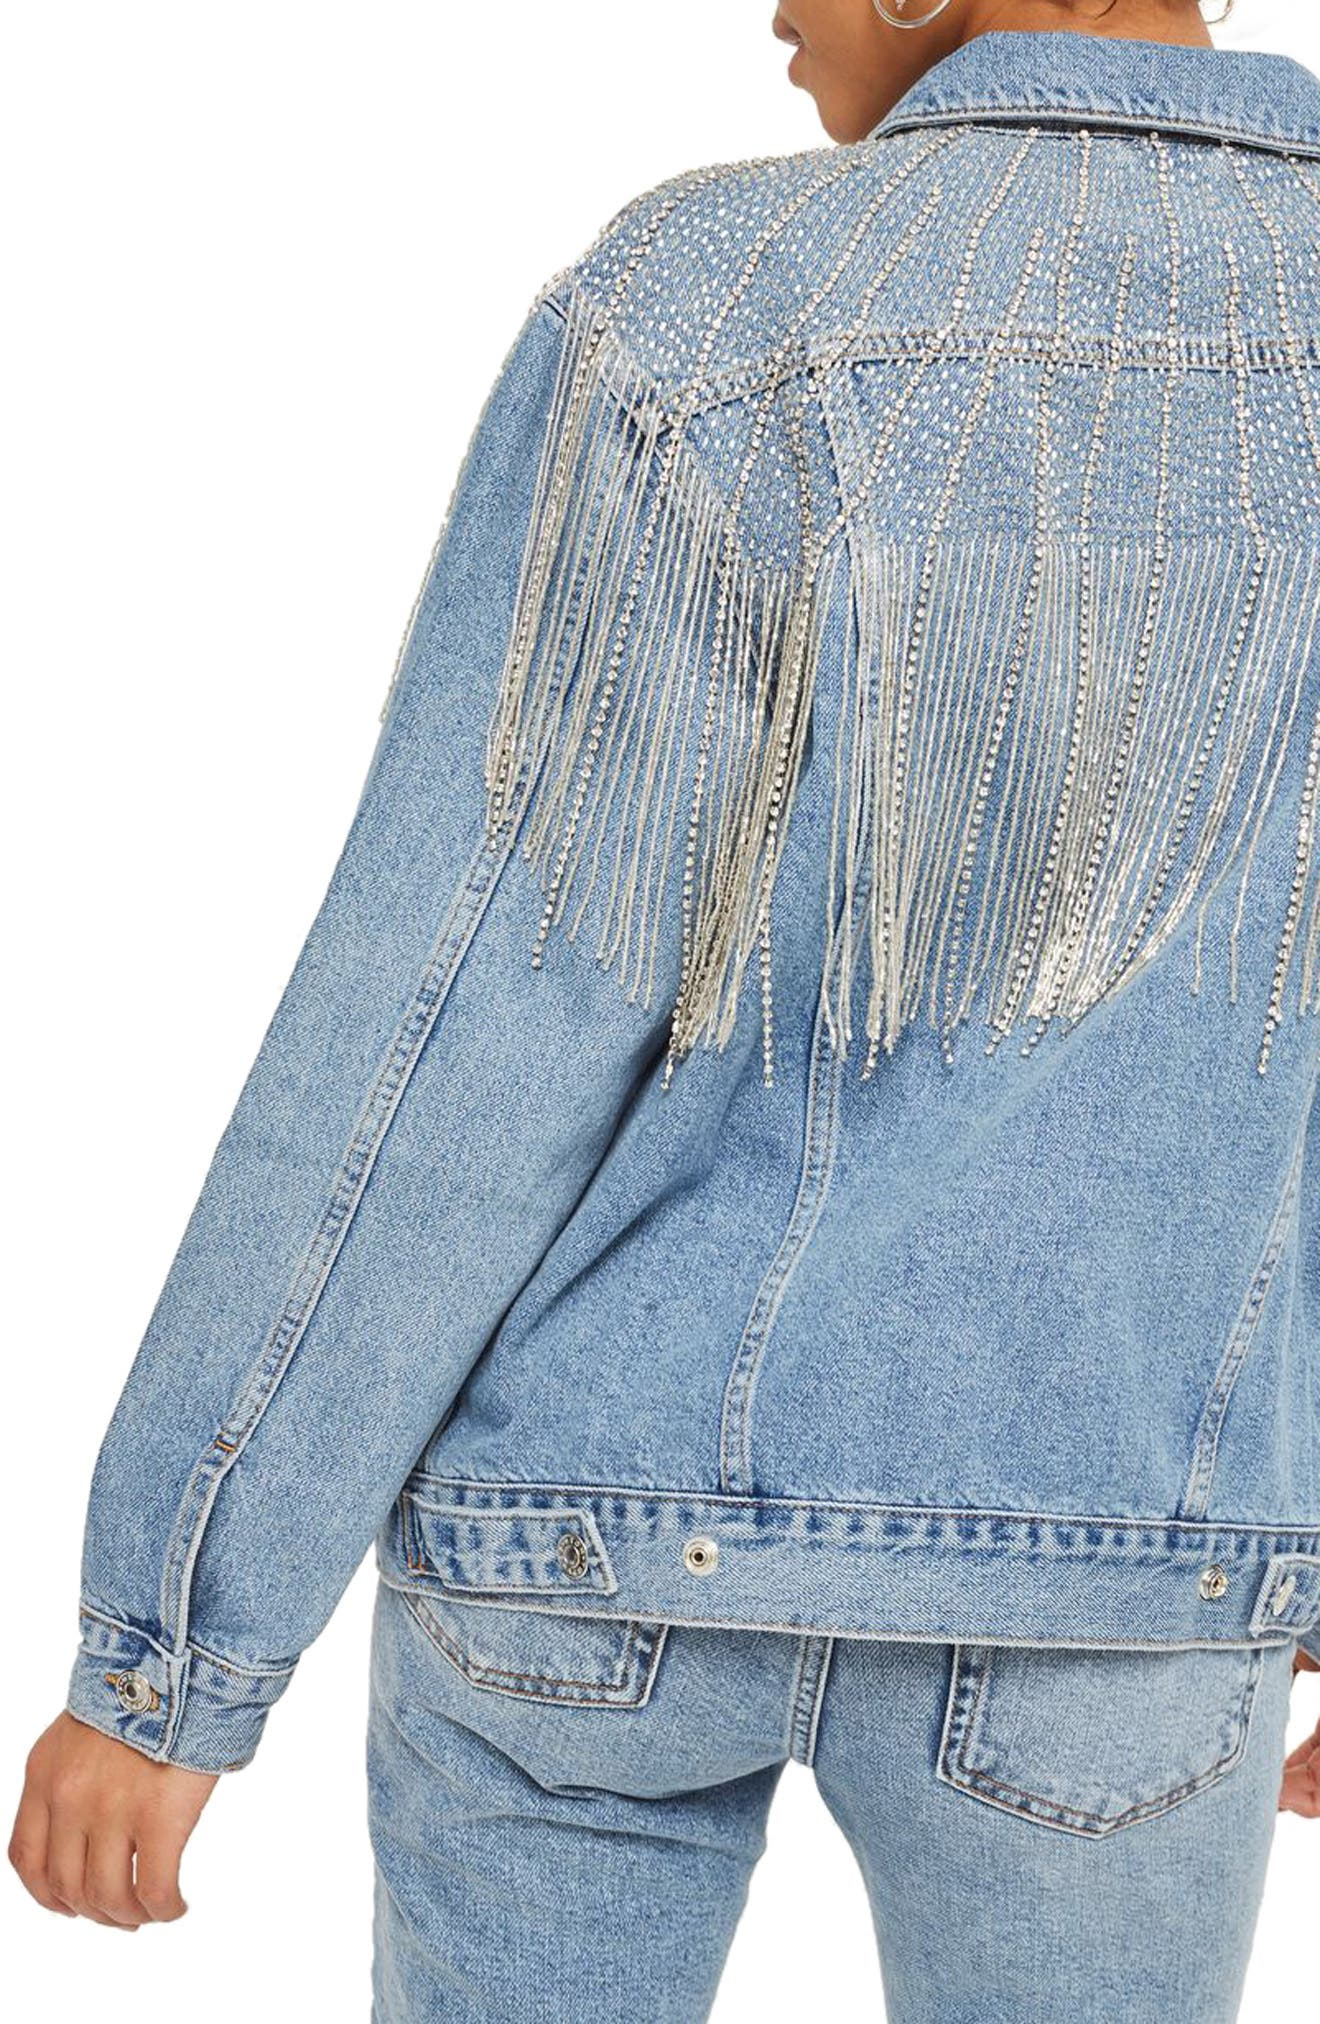 Dolly Sequin Fringe Denim Jacket,                             Alternate thumbnail 2, color,                             400